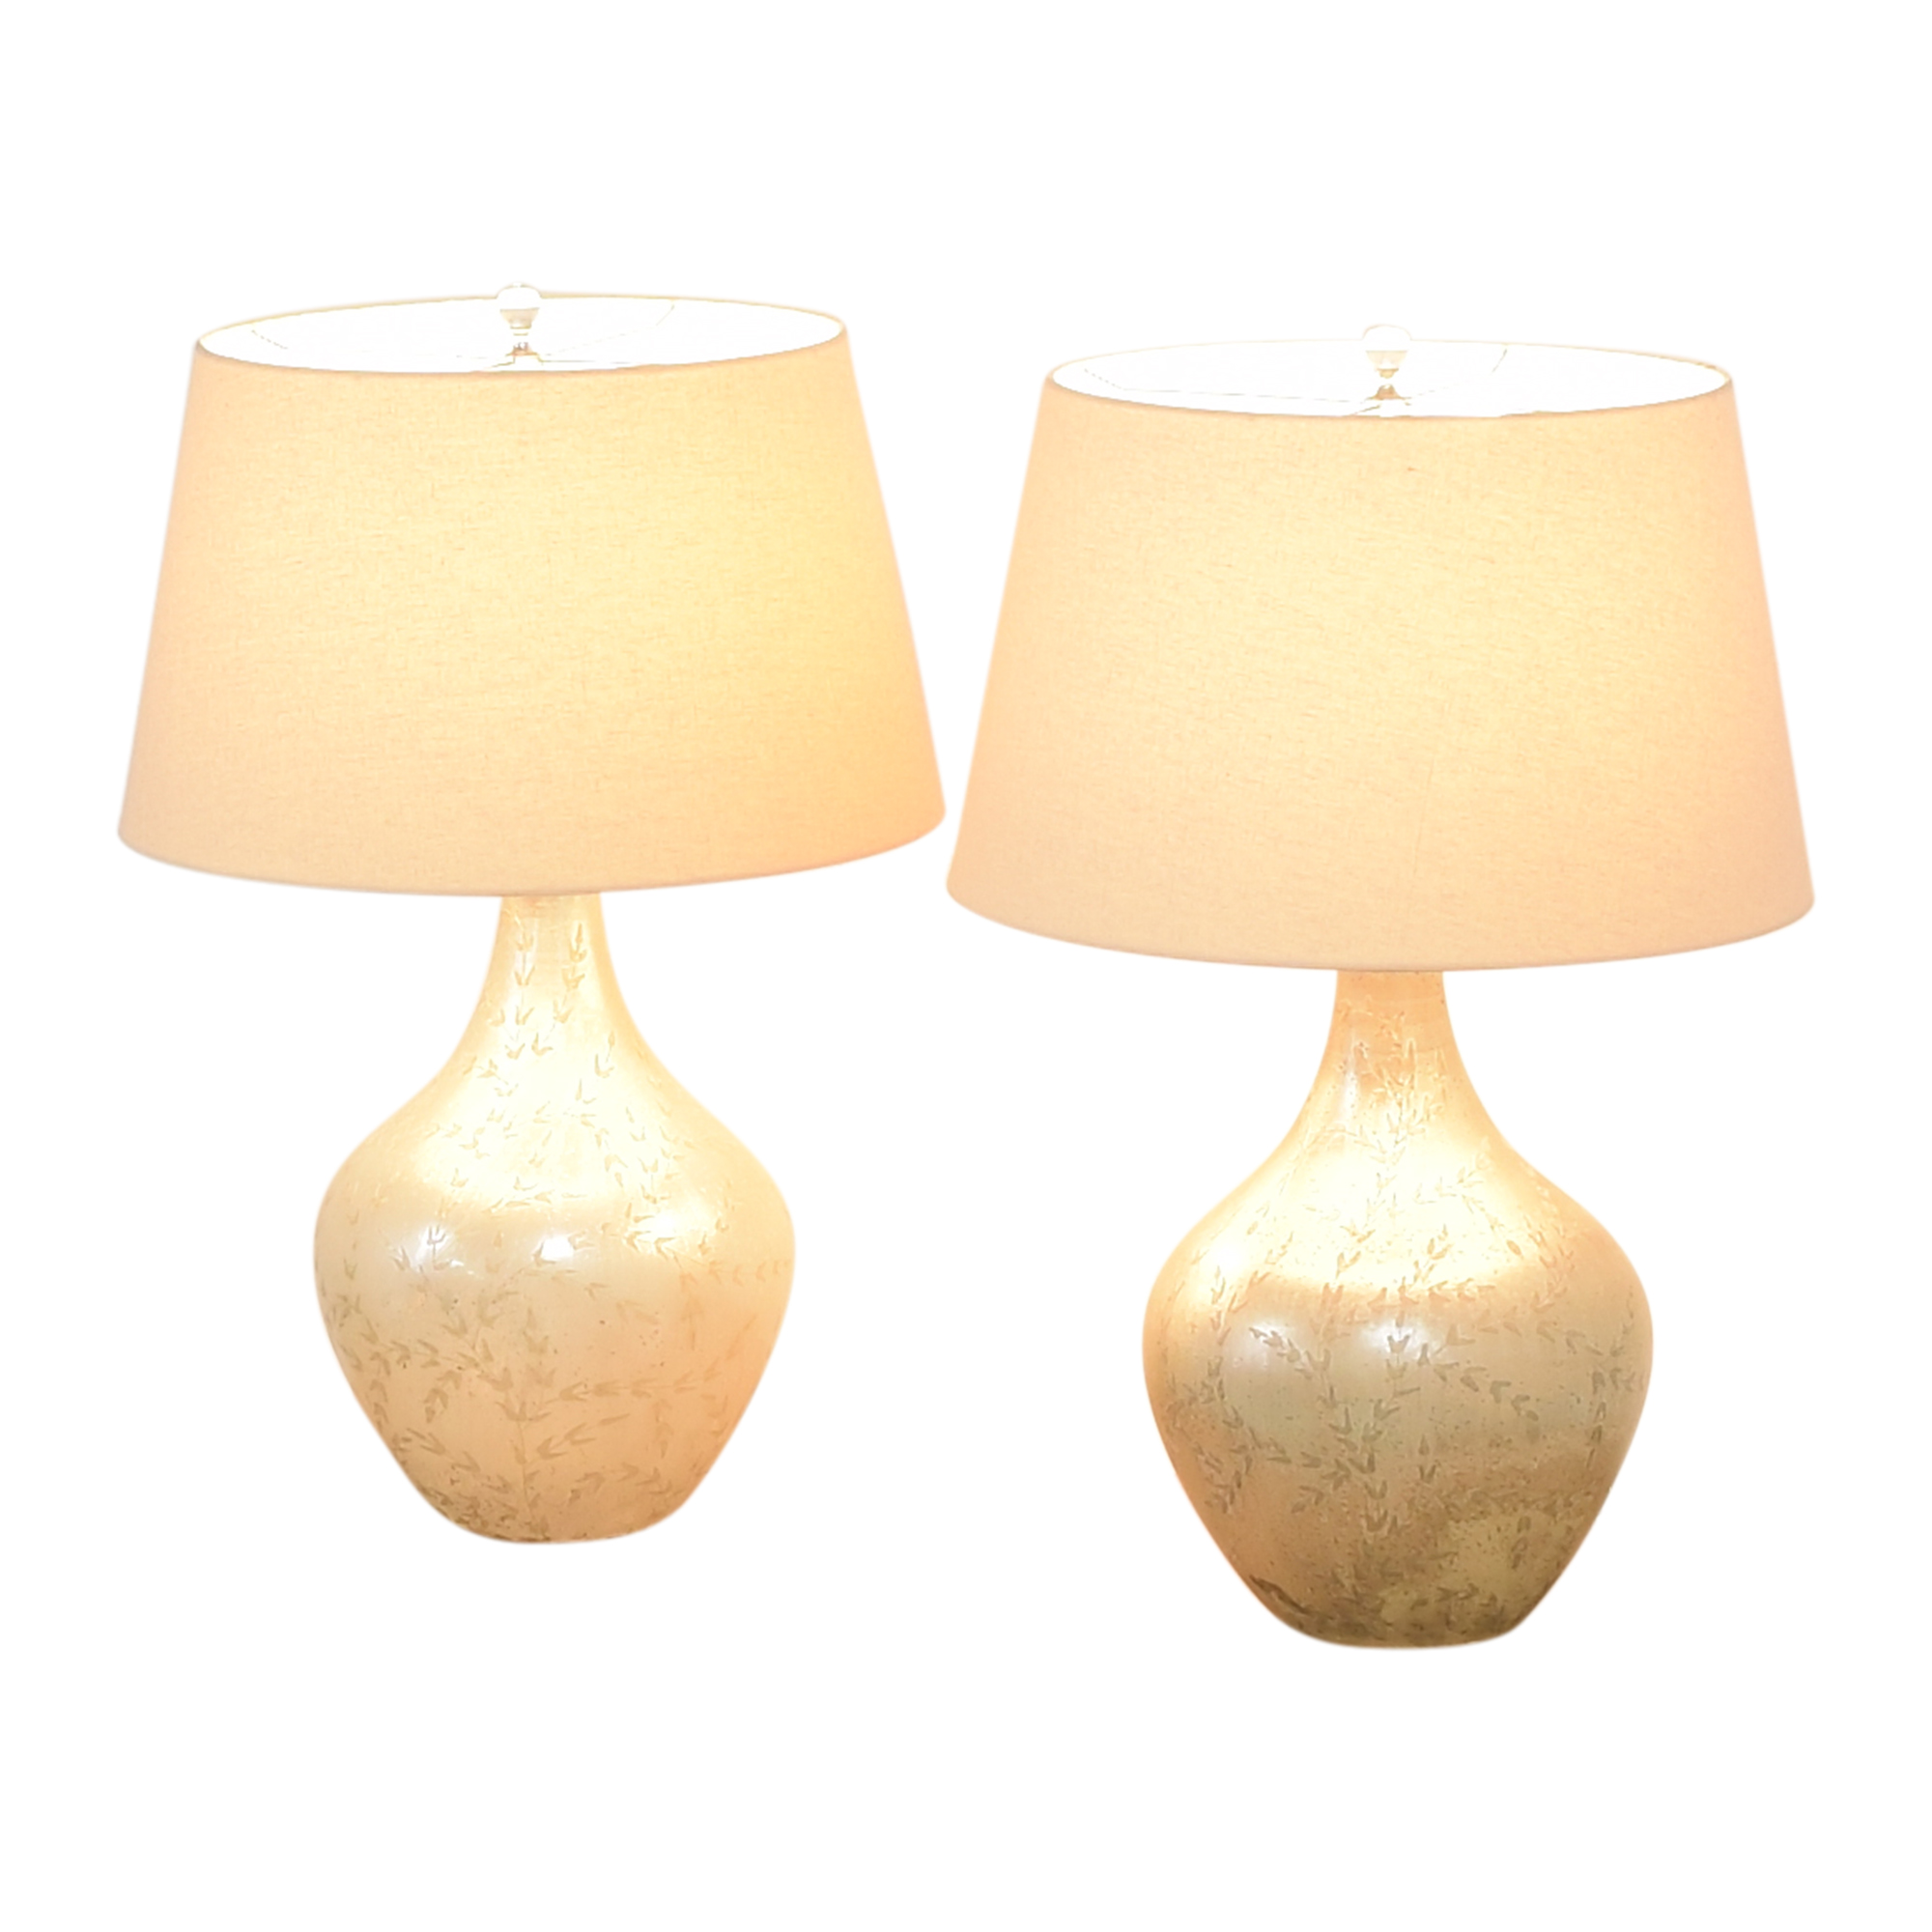 Tanner & Kenzie Tanner & Kenzie Bedside Table Lamps nyc